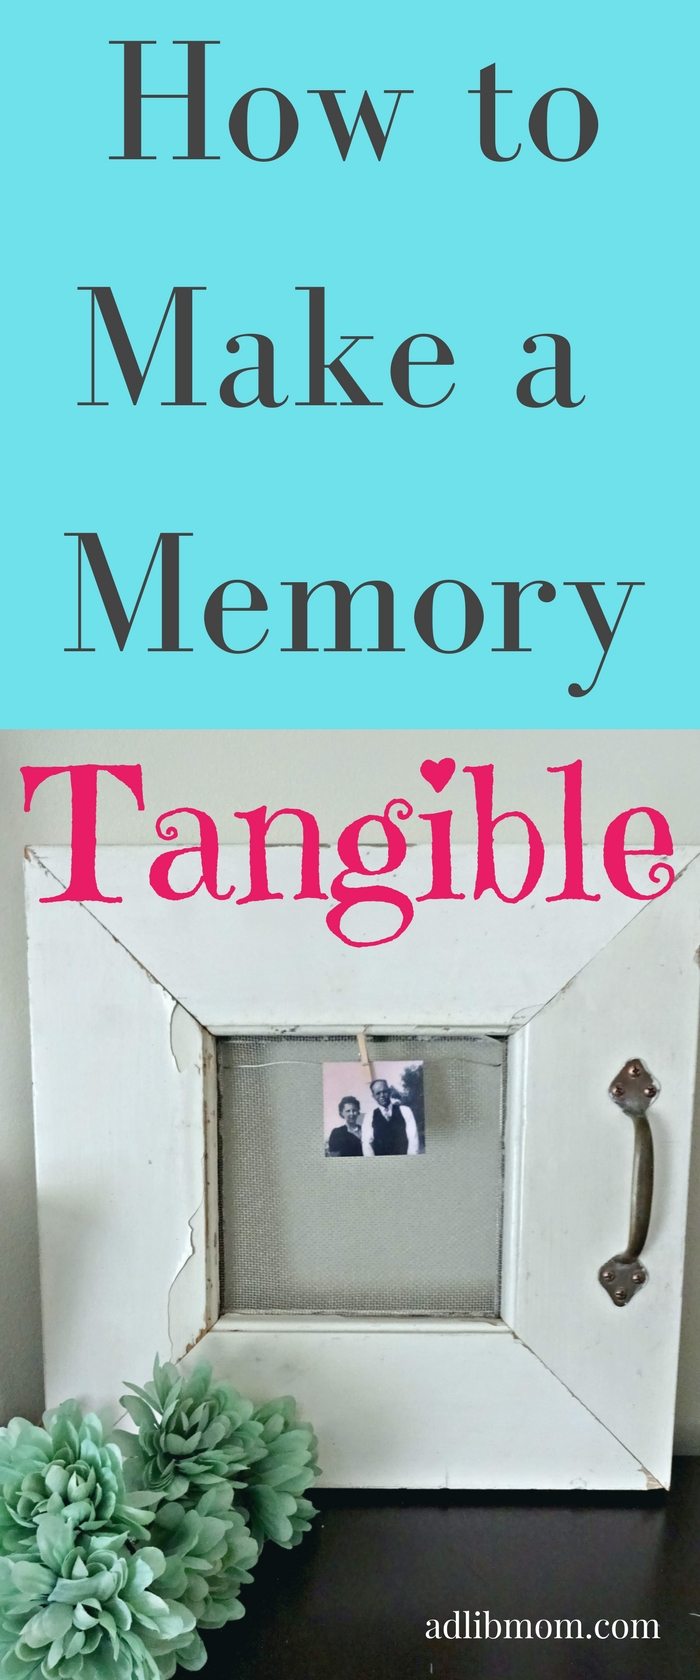 how to turn a memory into a tangible item